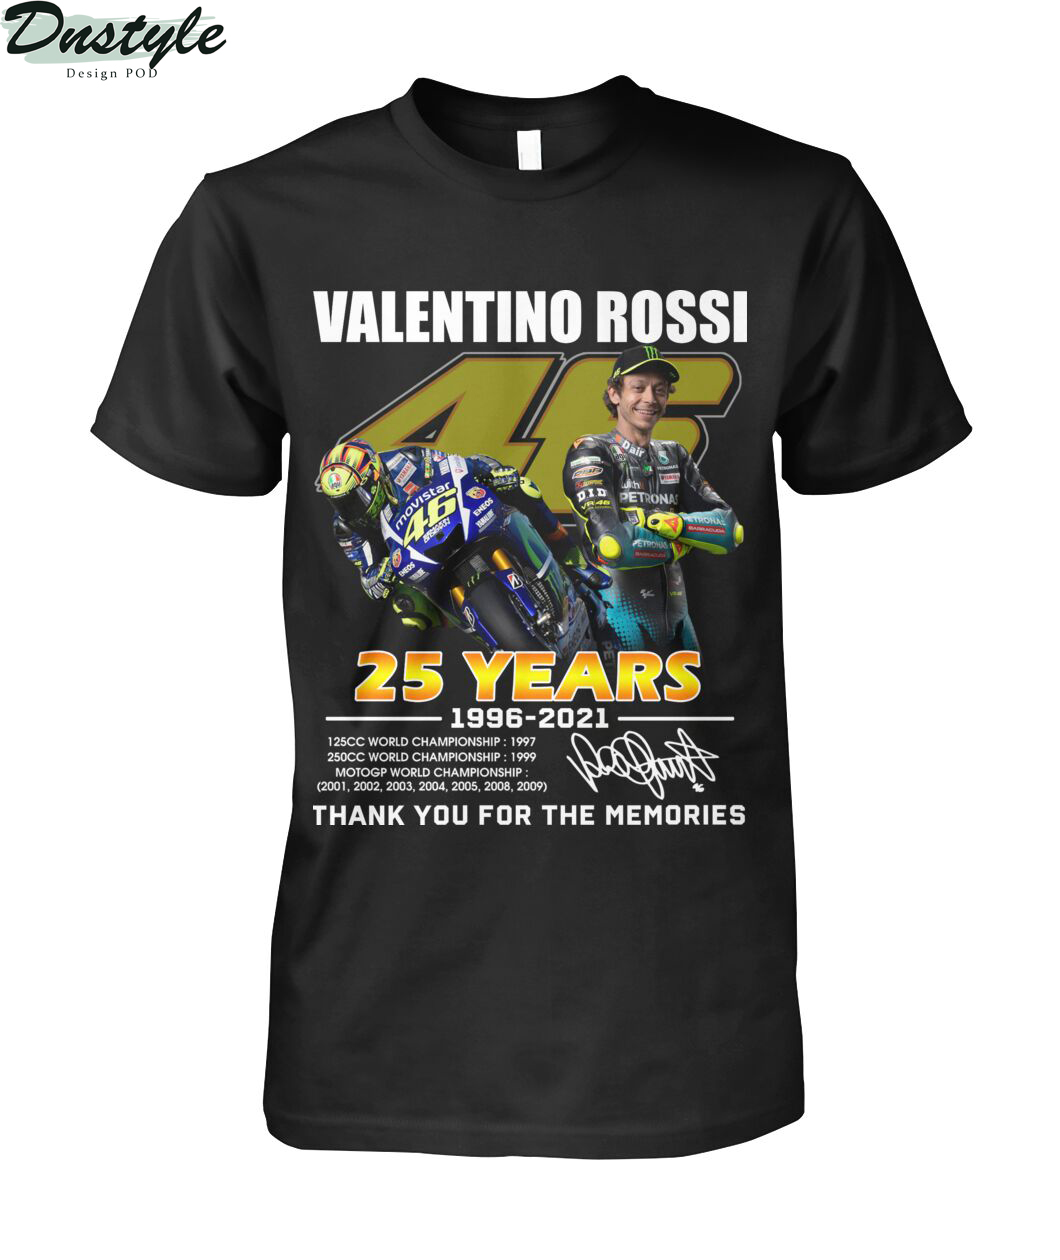 Valentino rossi 25 years thank you for the memories shirt